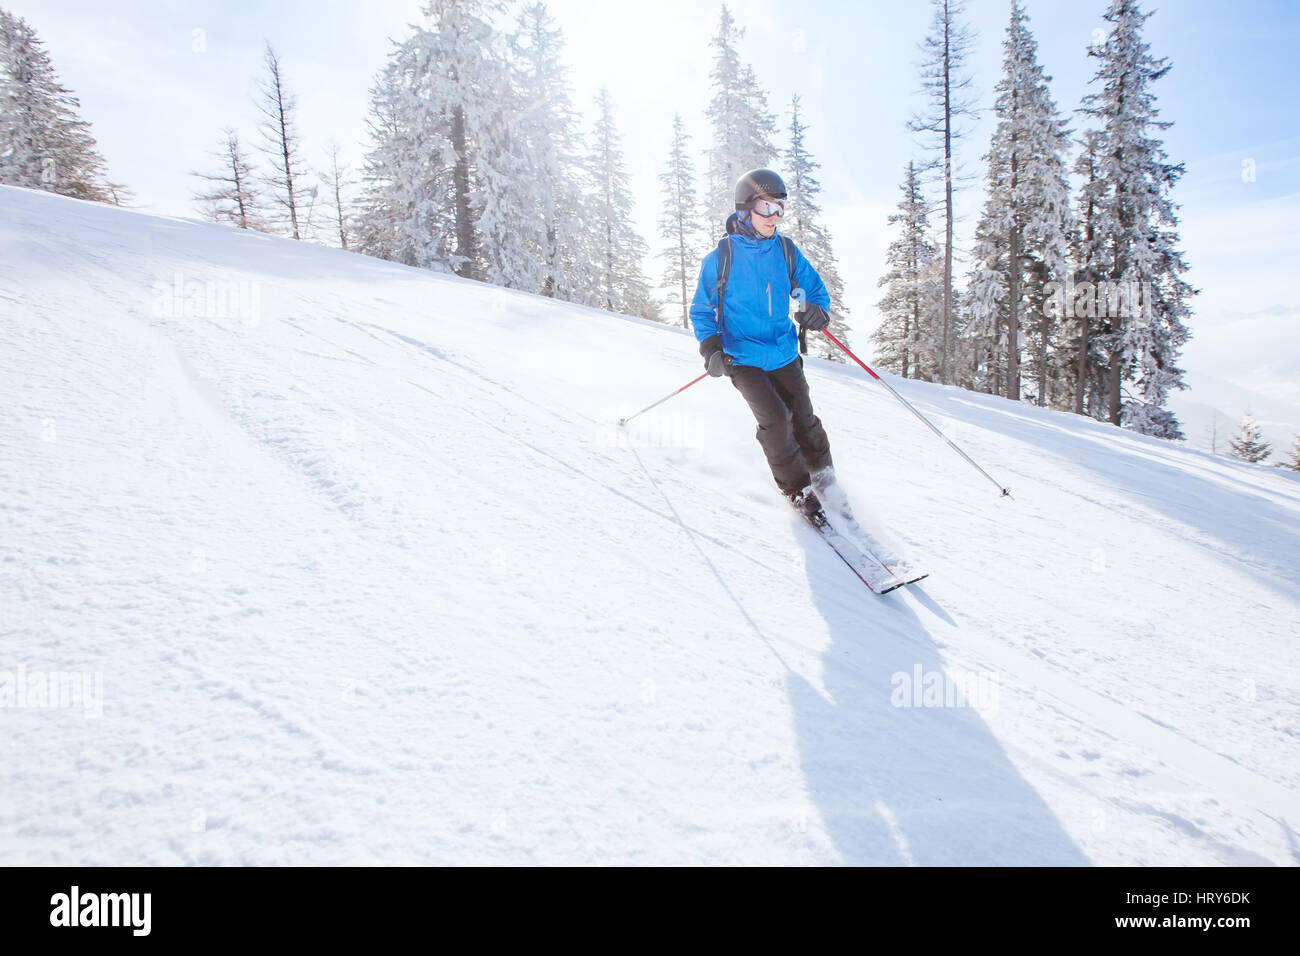 downhill skiing background, skier in mountains, winter sport - Stock Image